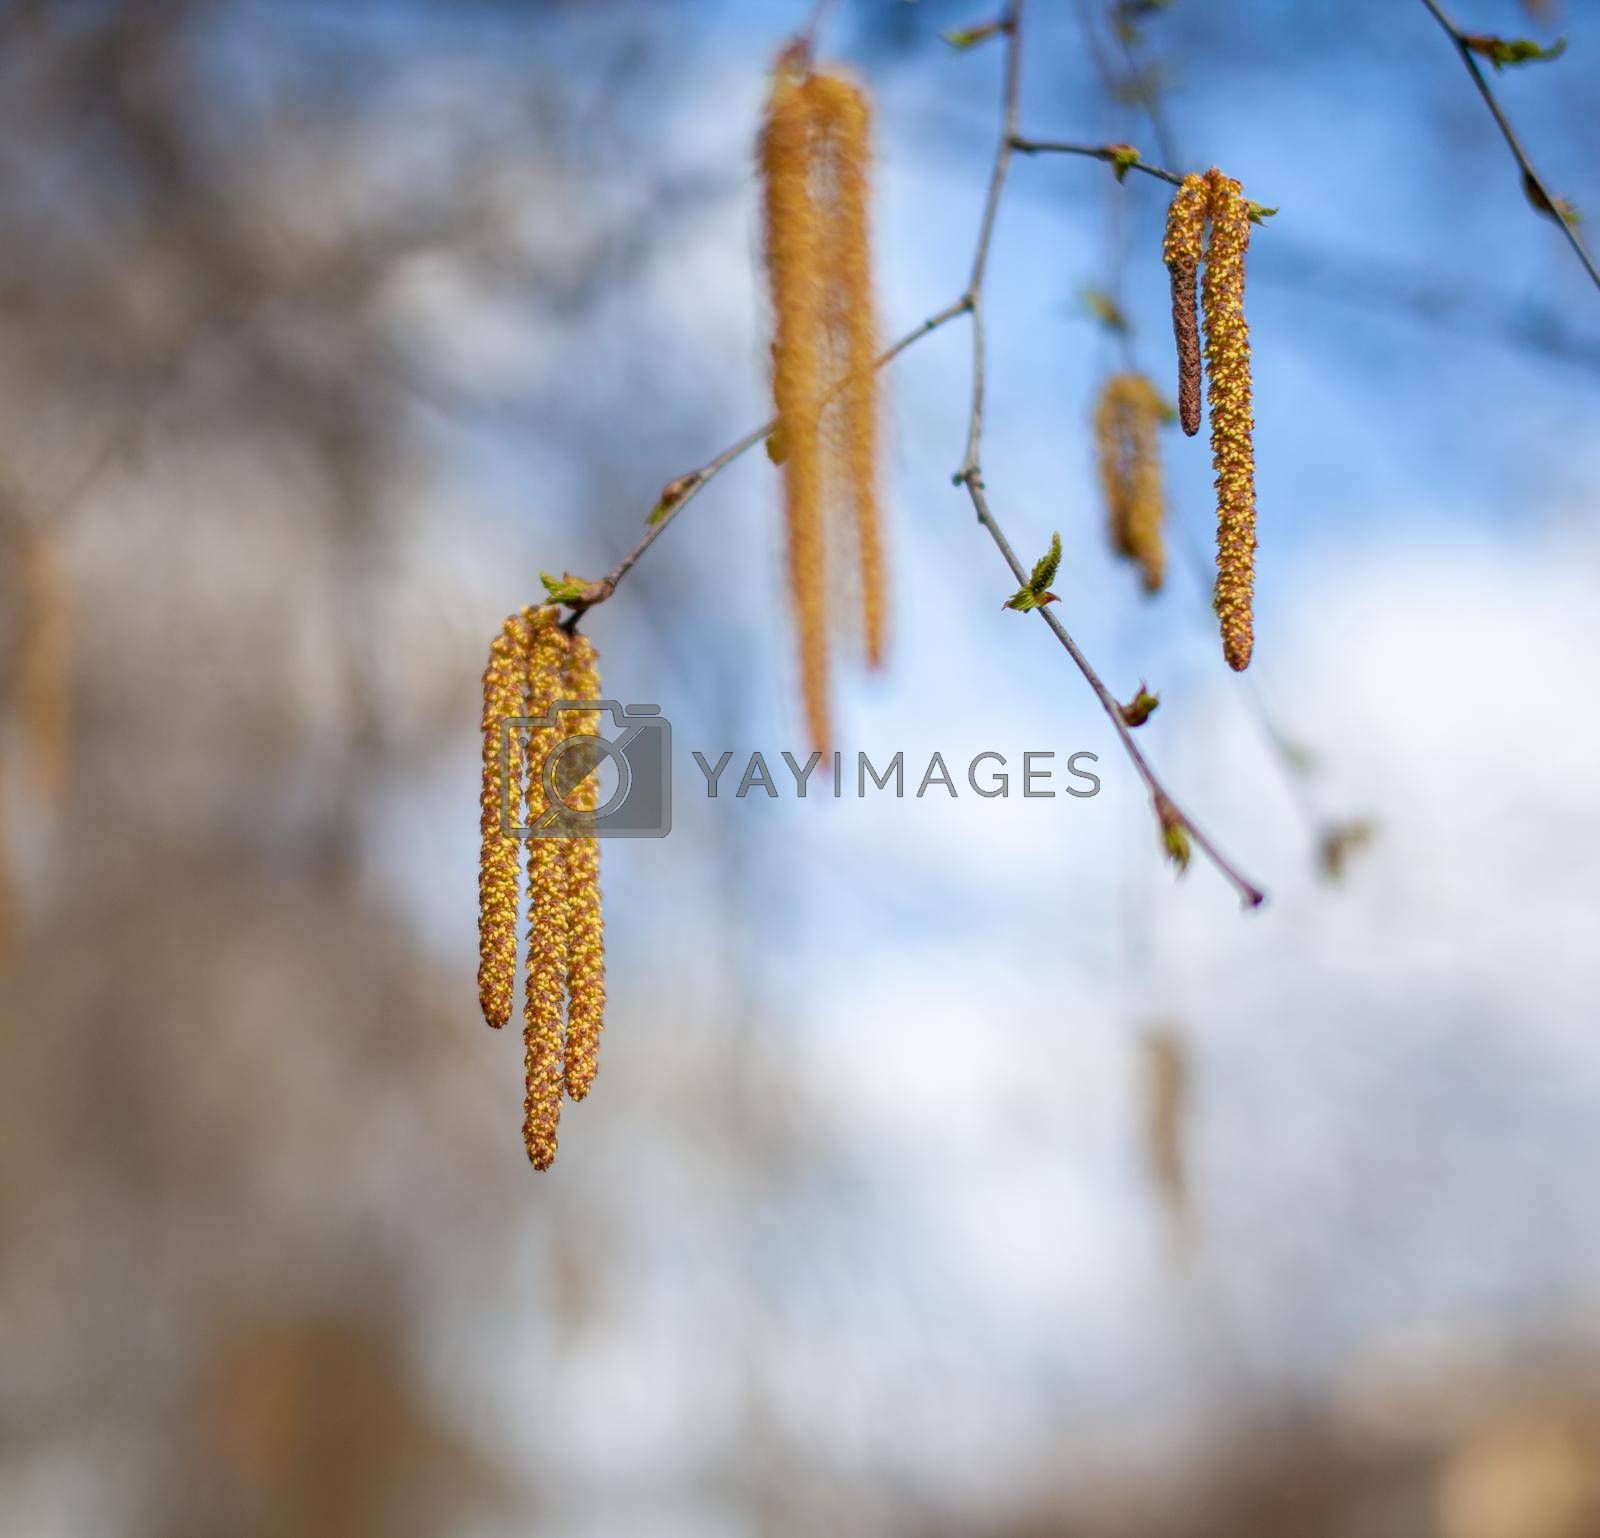 Nice sunny view of the birch branches. Buds and bright green, small leaves thrives. Decorative birch flower- long, slender catkins hang on tree branches. The arrival of spring, seasonal allergies.